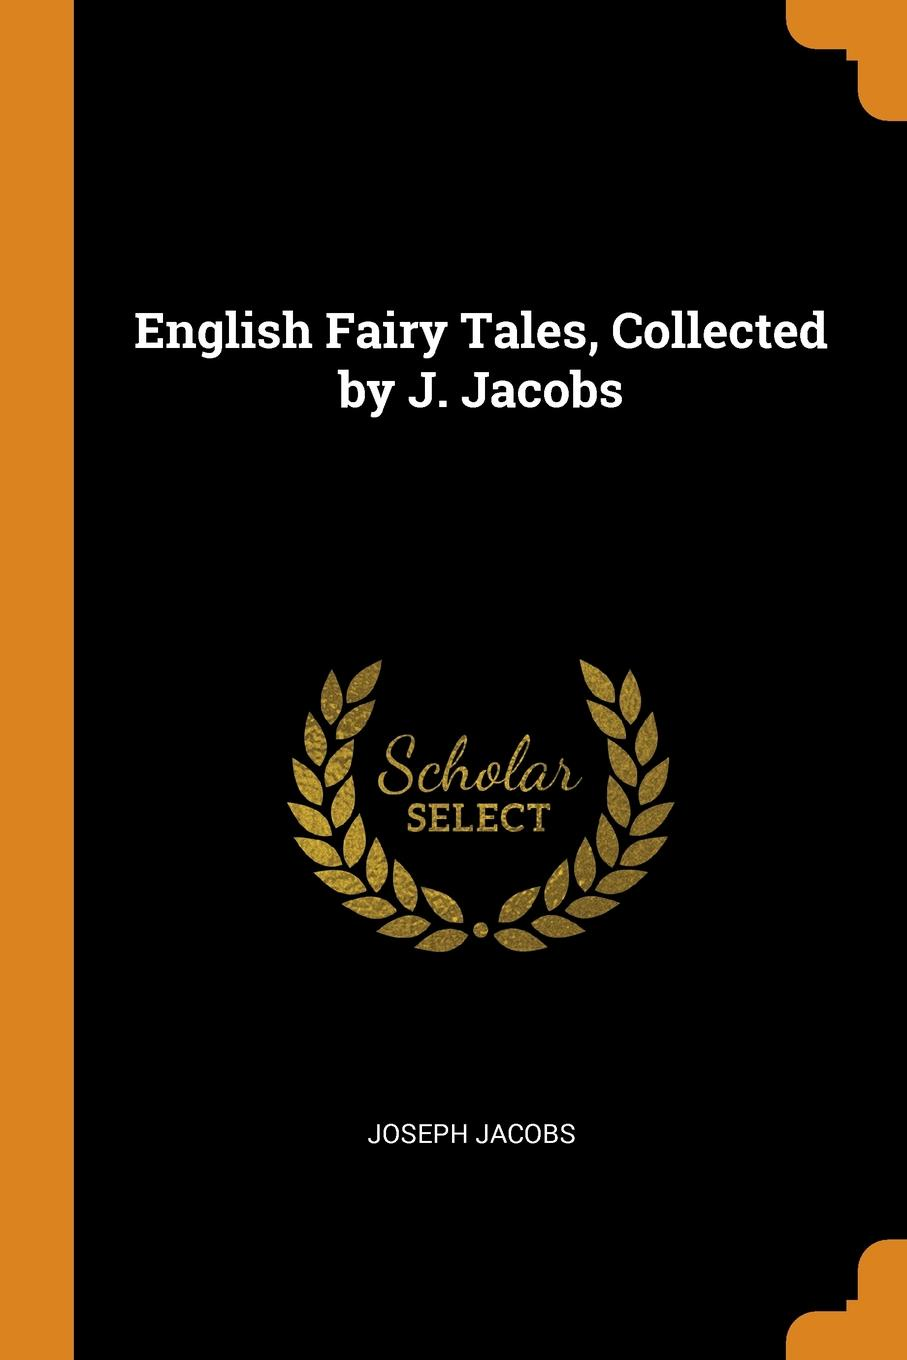 Joseph Jacobs English Fairy Tales, Collected by J. Jacobs